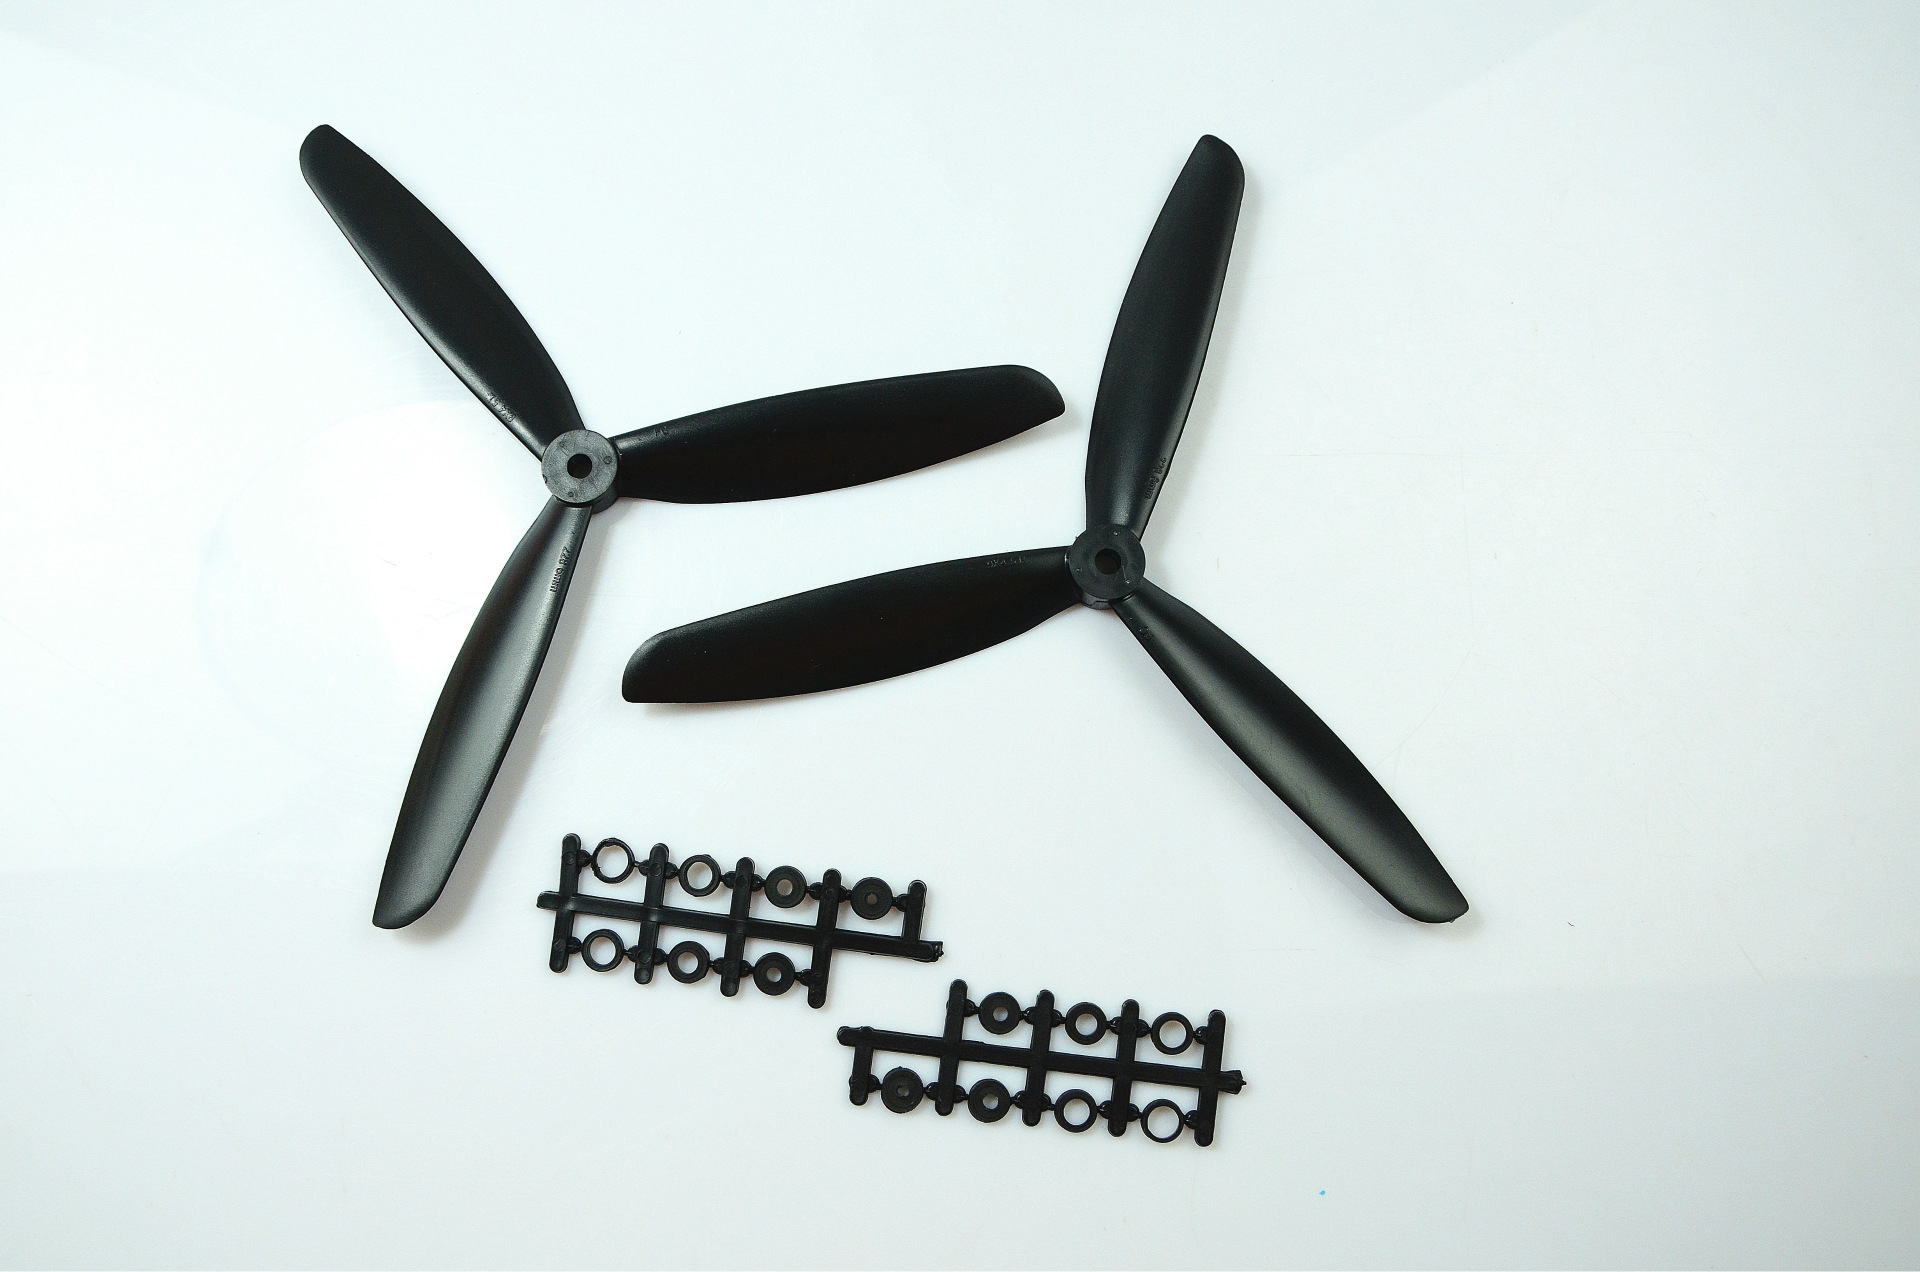 9X4.5 9045 9045R CW CCW 2 Pairs 3-Blade Electric Propeller RC Multicopter Quadcopter Kit Model Accessories UAV Accessories купить